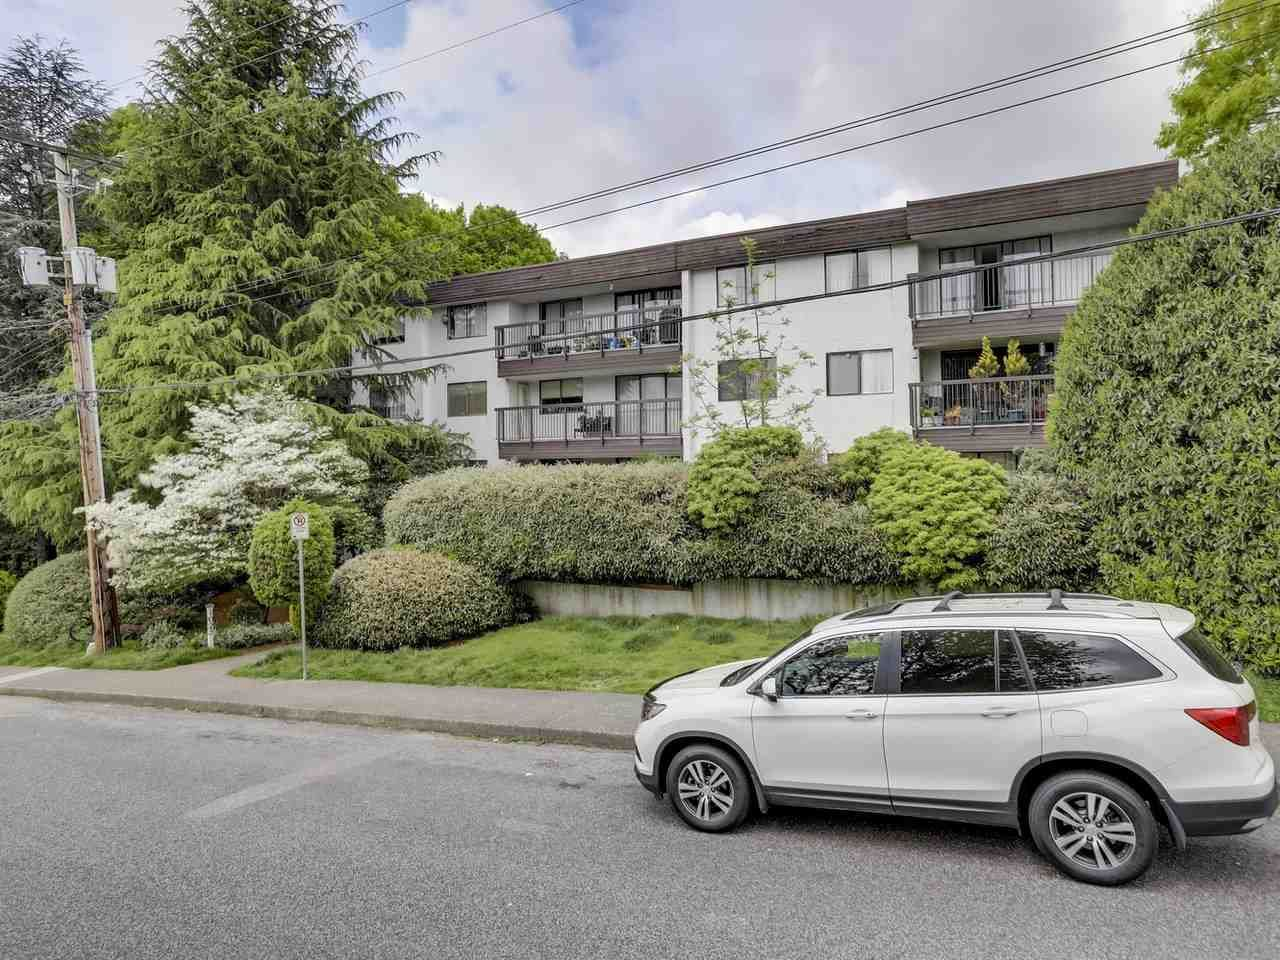 """Main Photo: 207 1025 CORNWALL Street in New Westminster: Uptown NW Condo for sale in """"CORNWALL PLACE"""" : MLS®# R2266192"""